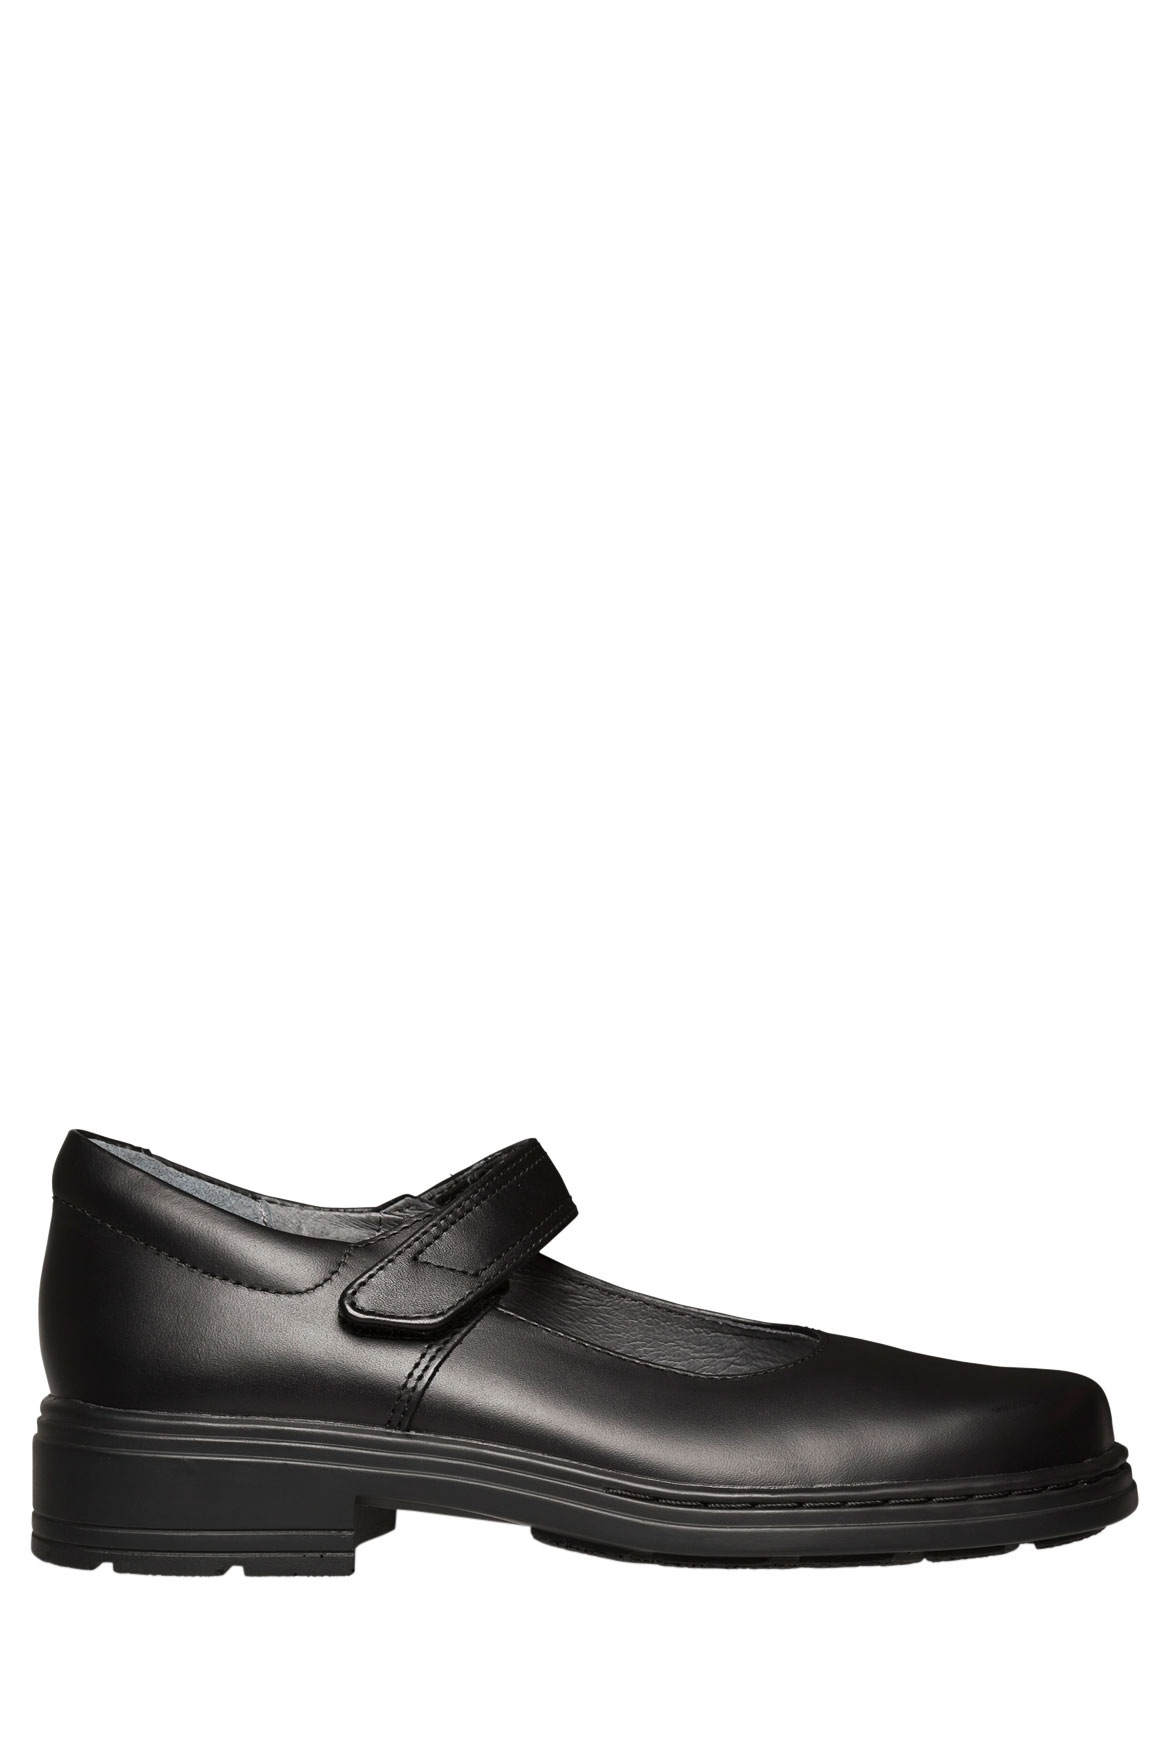 Myer Clarks Shoes